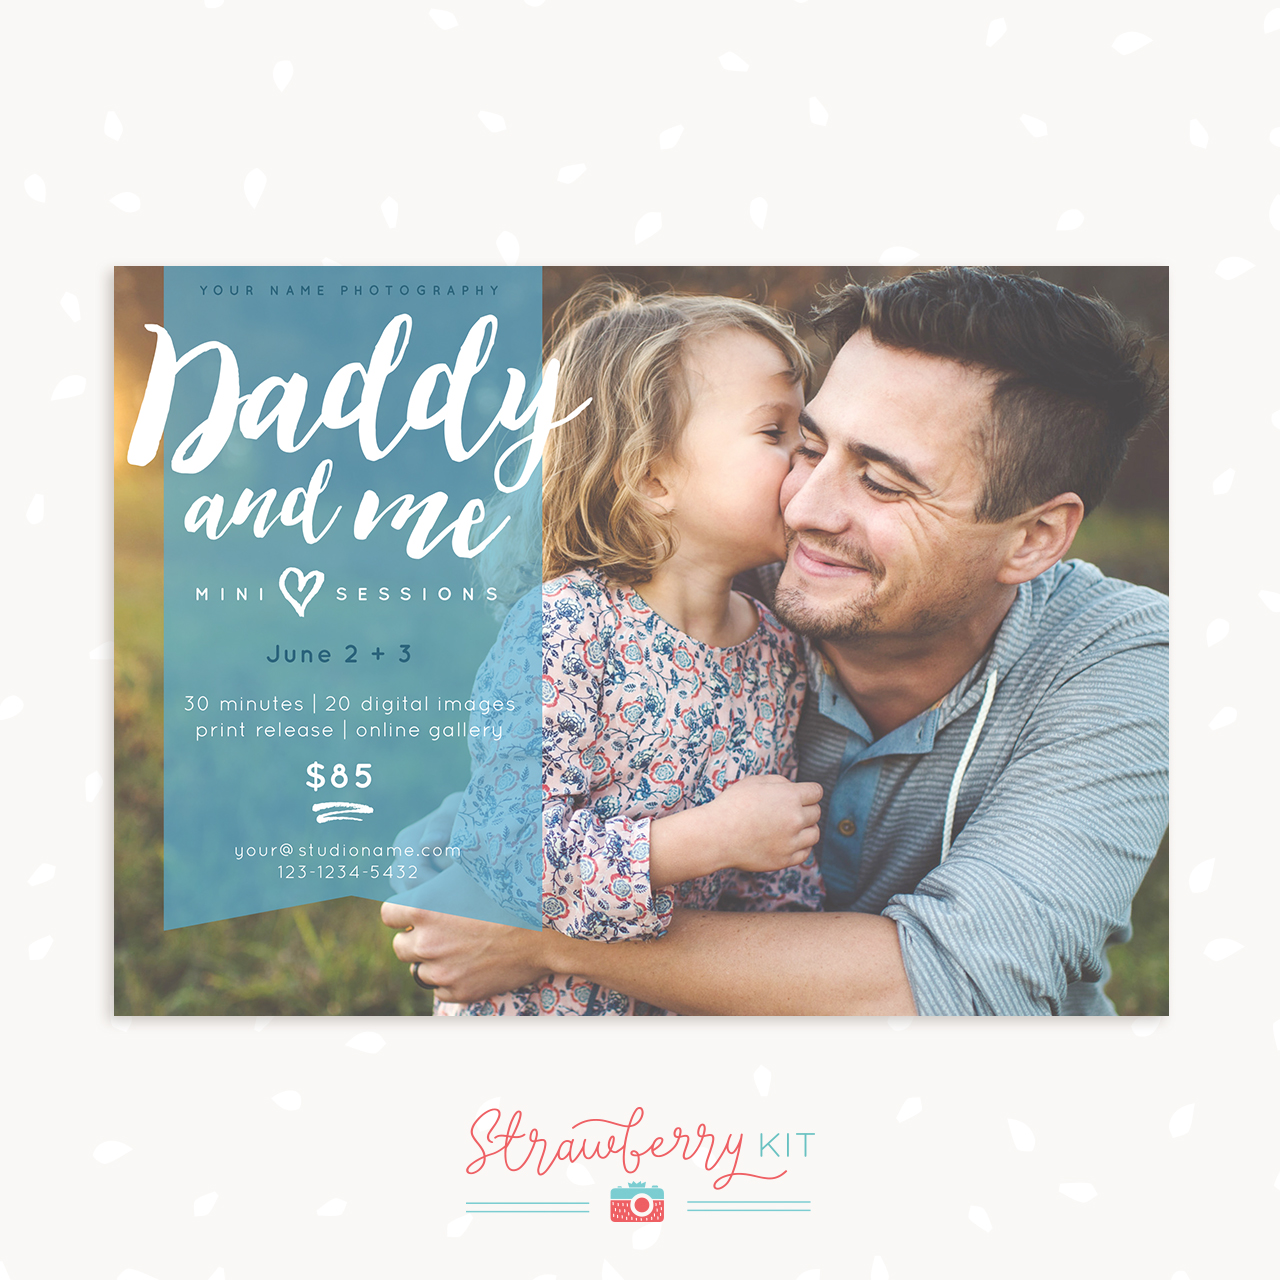 Daddy and me mini sessions marketing board